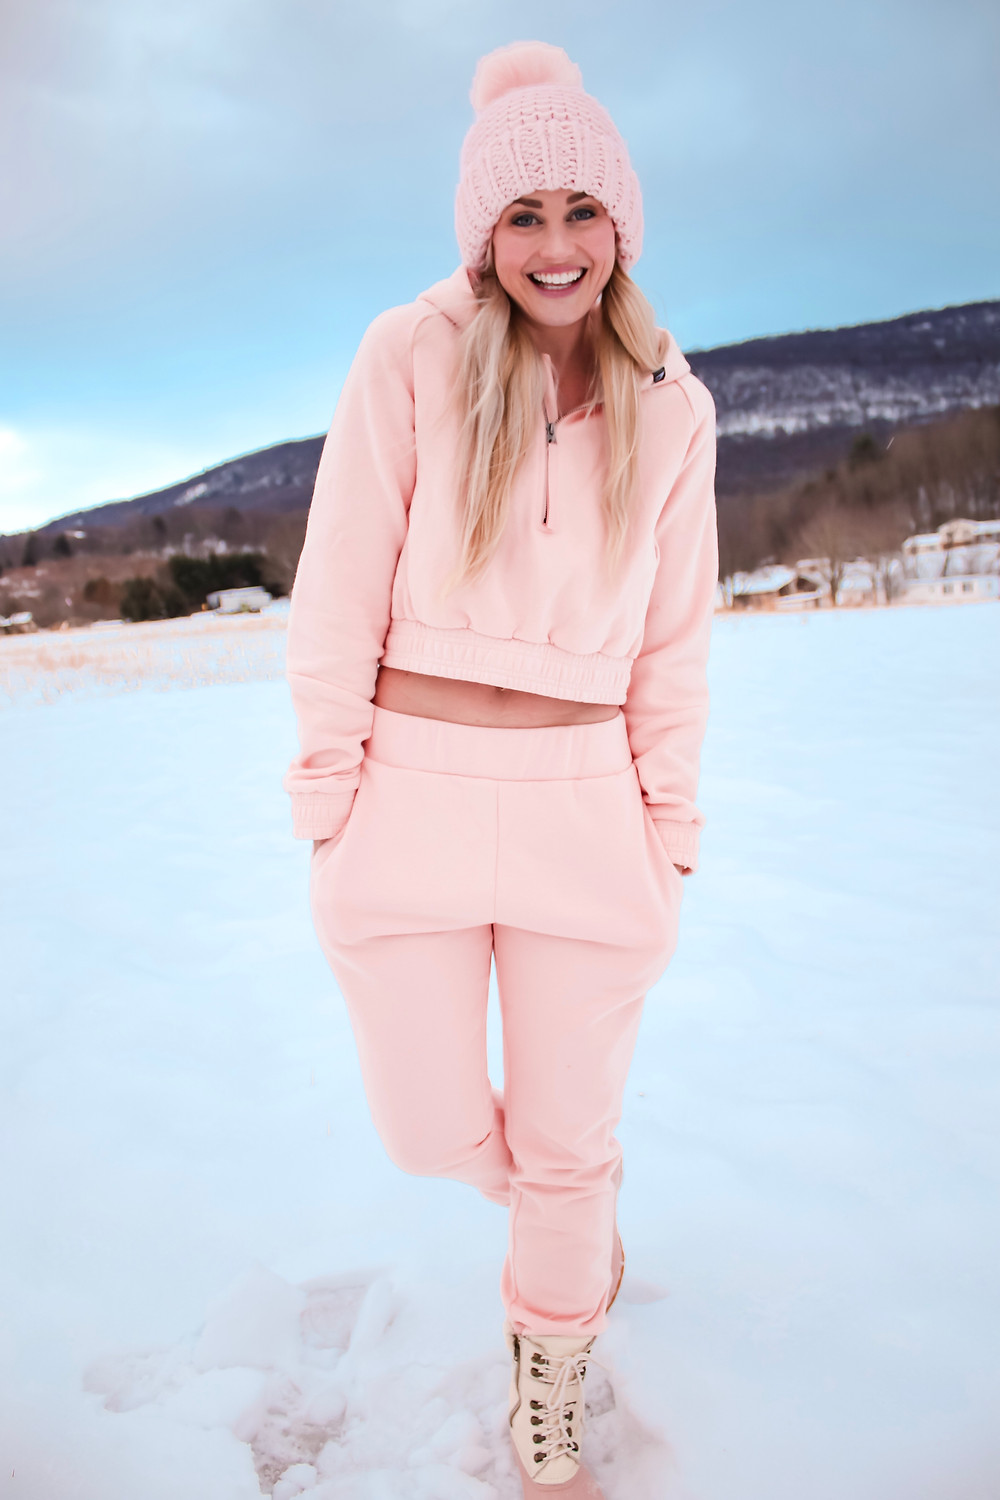 Perfectly Girly Athleisure Style